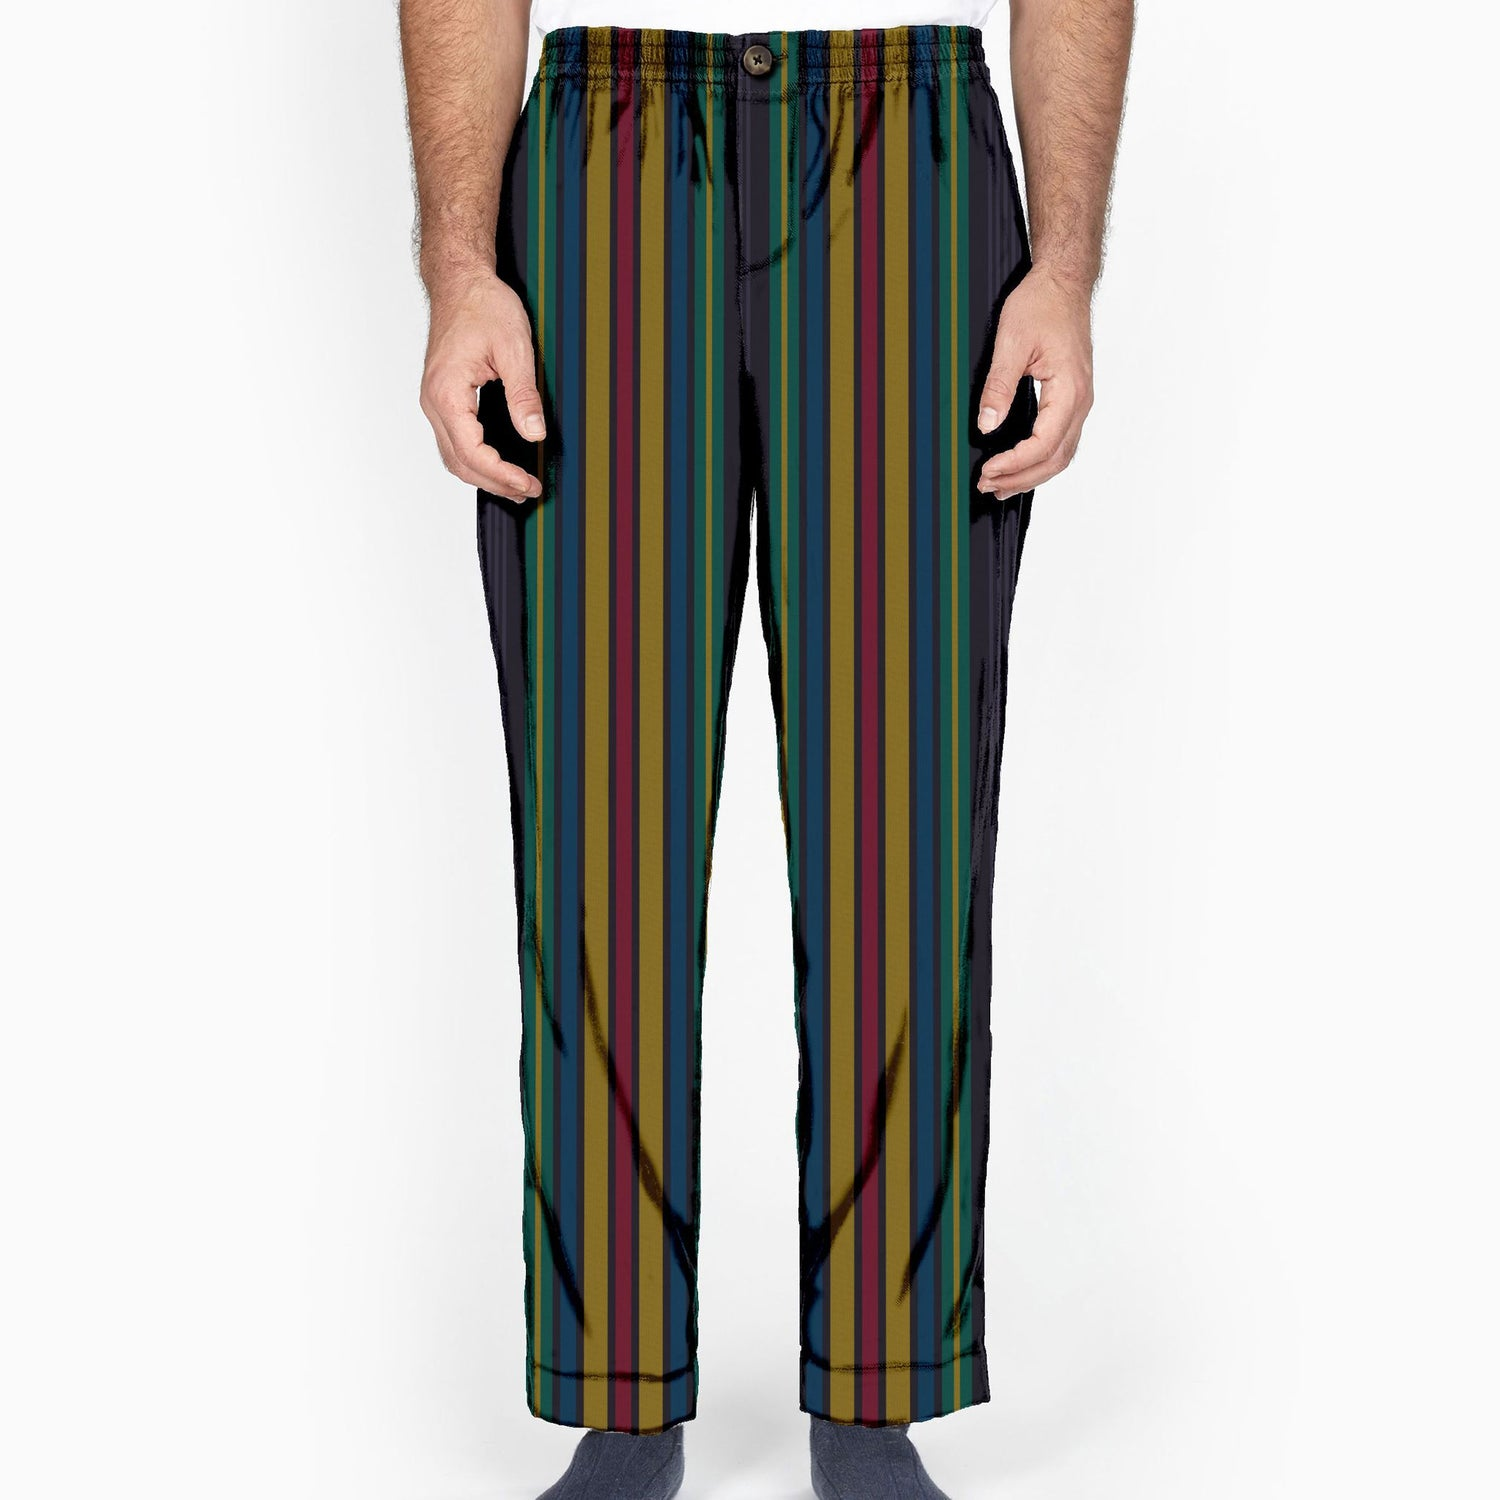 The Gala Stripe Flannel Lounge Pant